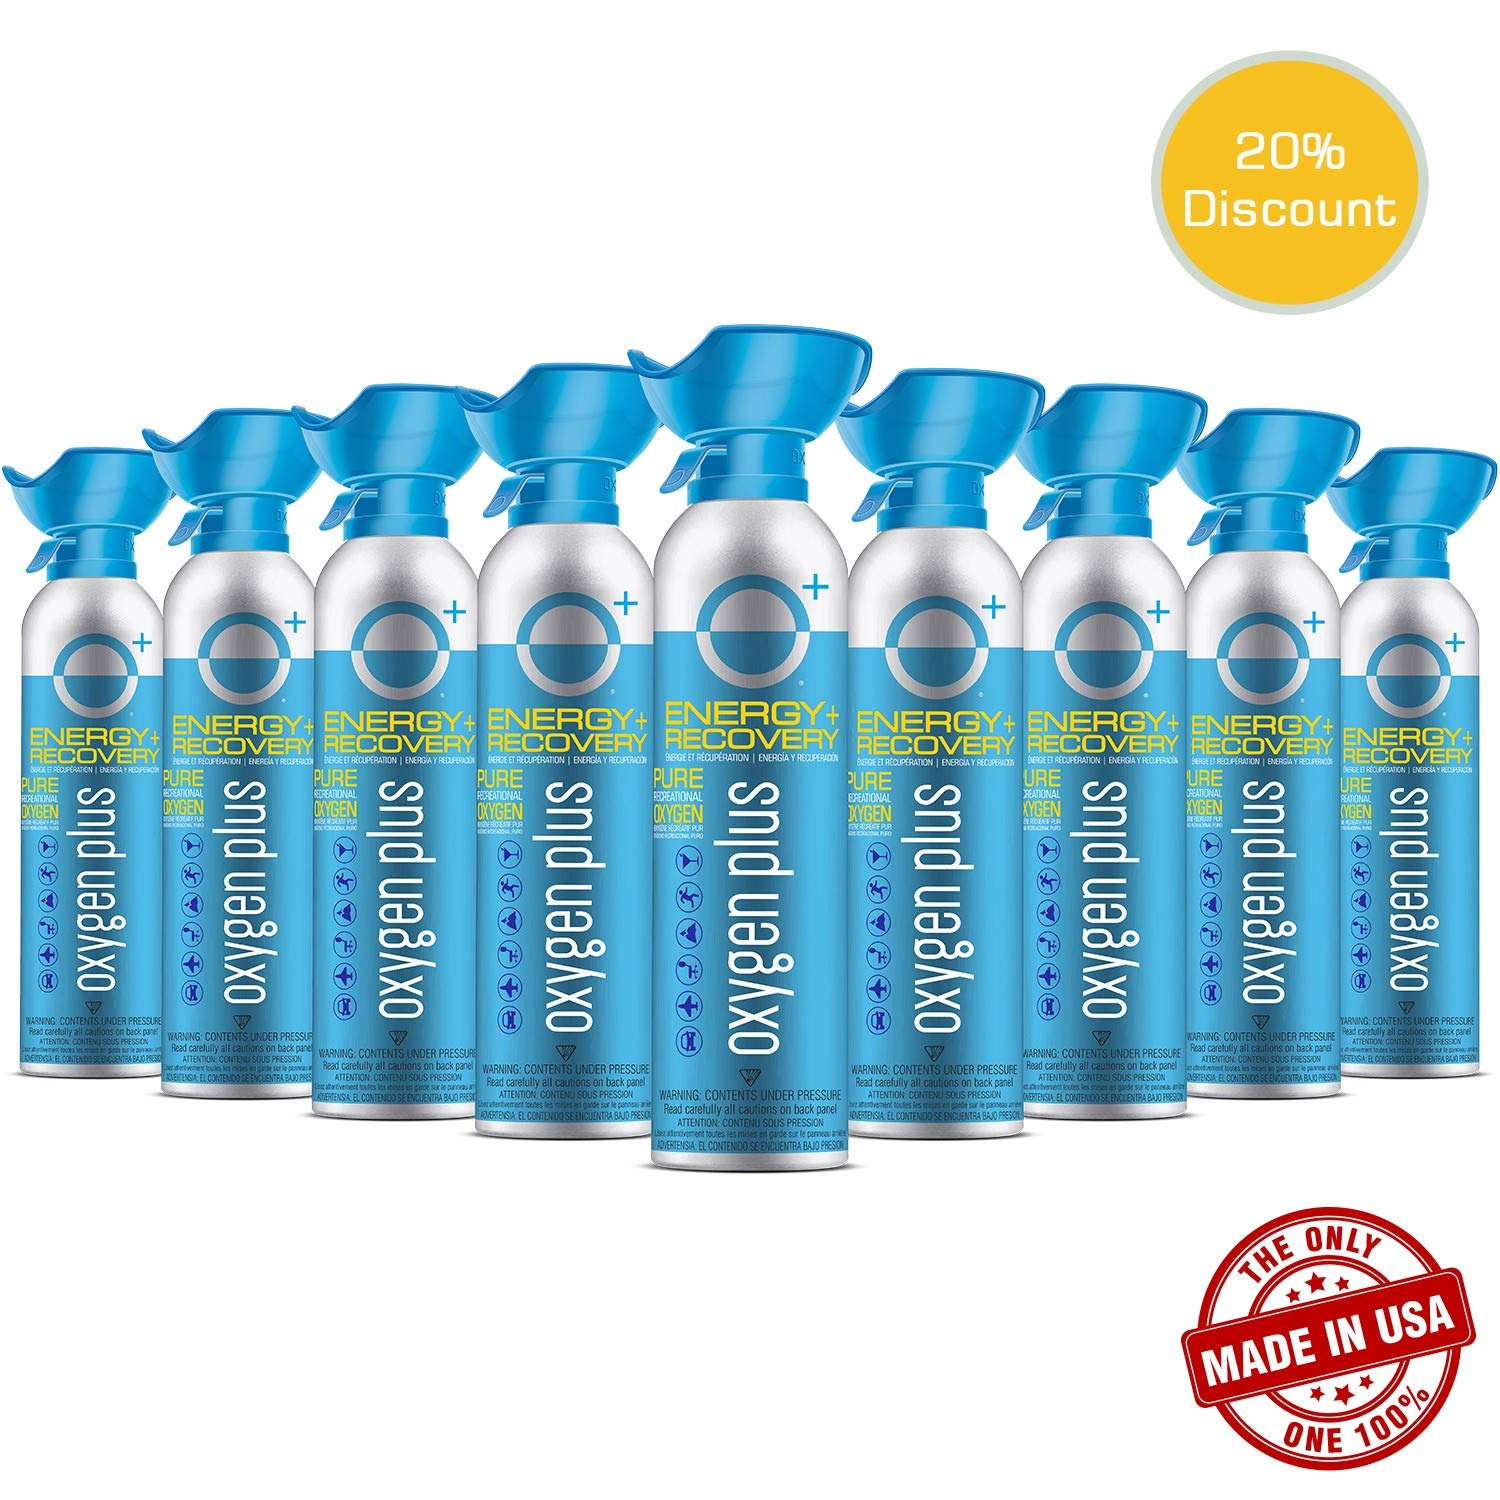 Oxygen Plus Oxygen Cans - O+ Biggi 9-Pack, Boost Oxygen Levels with Portable & Concentrated Recreational Oxygen for Altitude Performance, Energy & Performance, Made in the USA, Nine 7 Litre Canisters